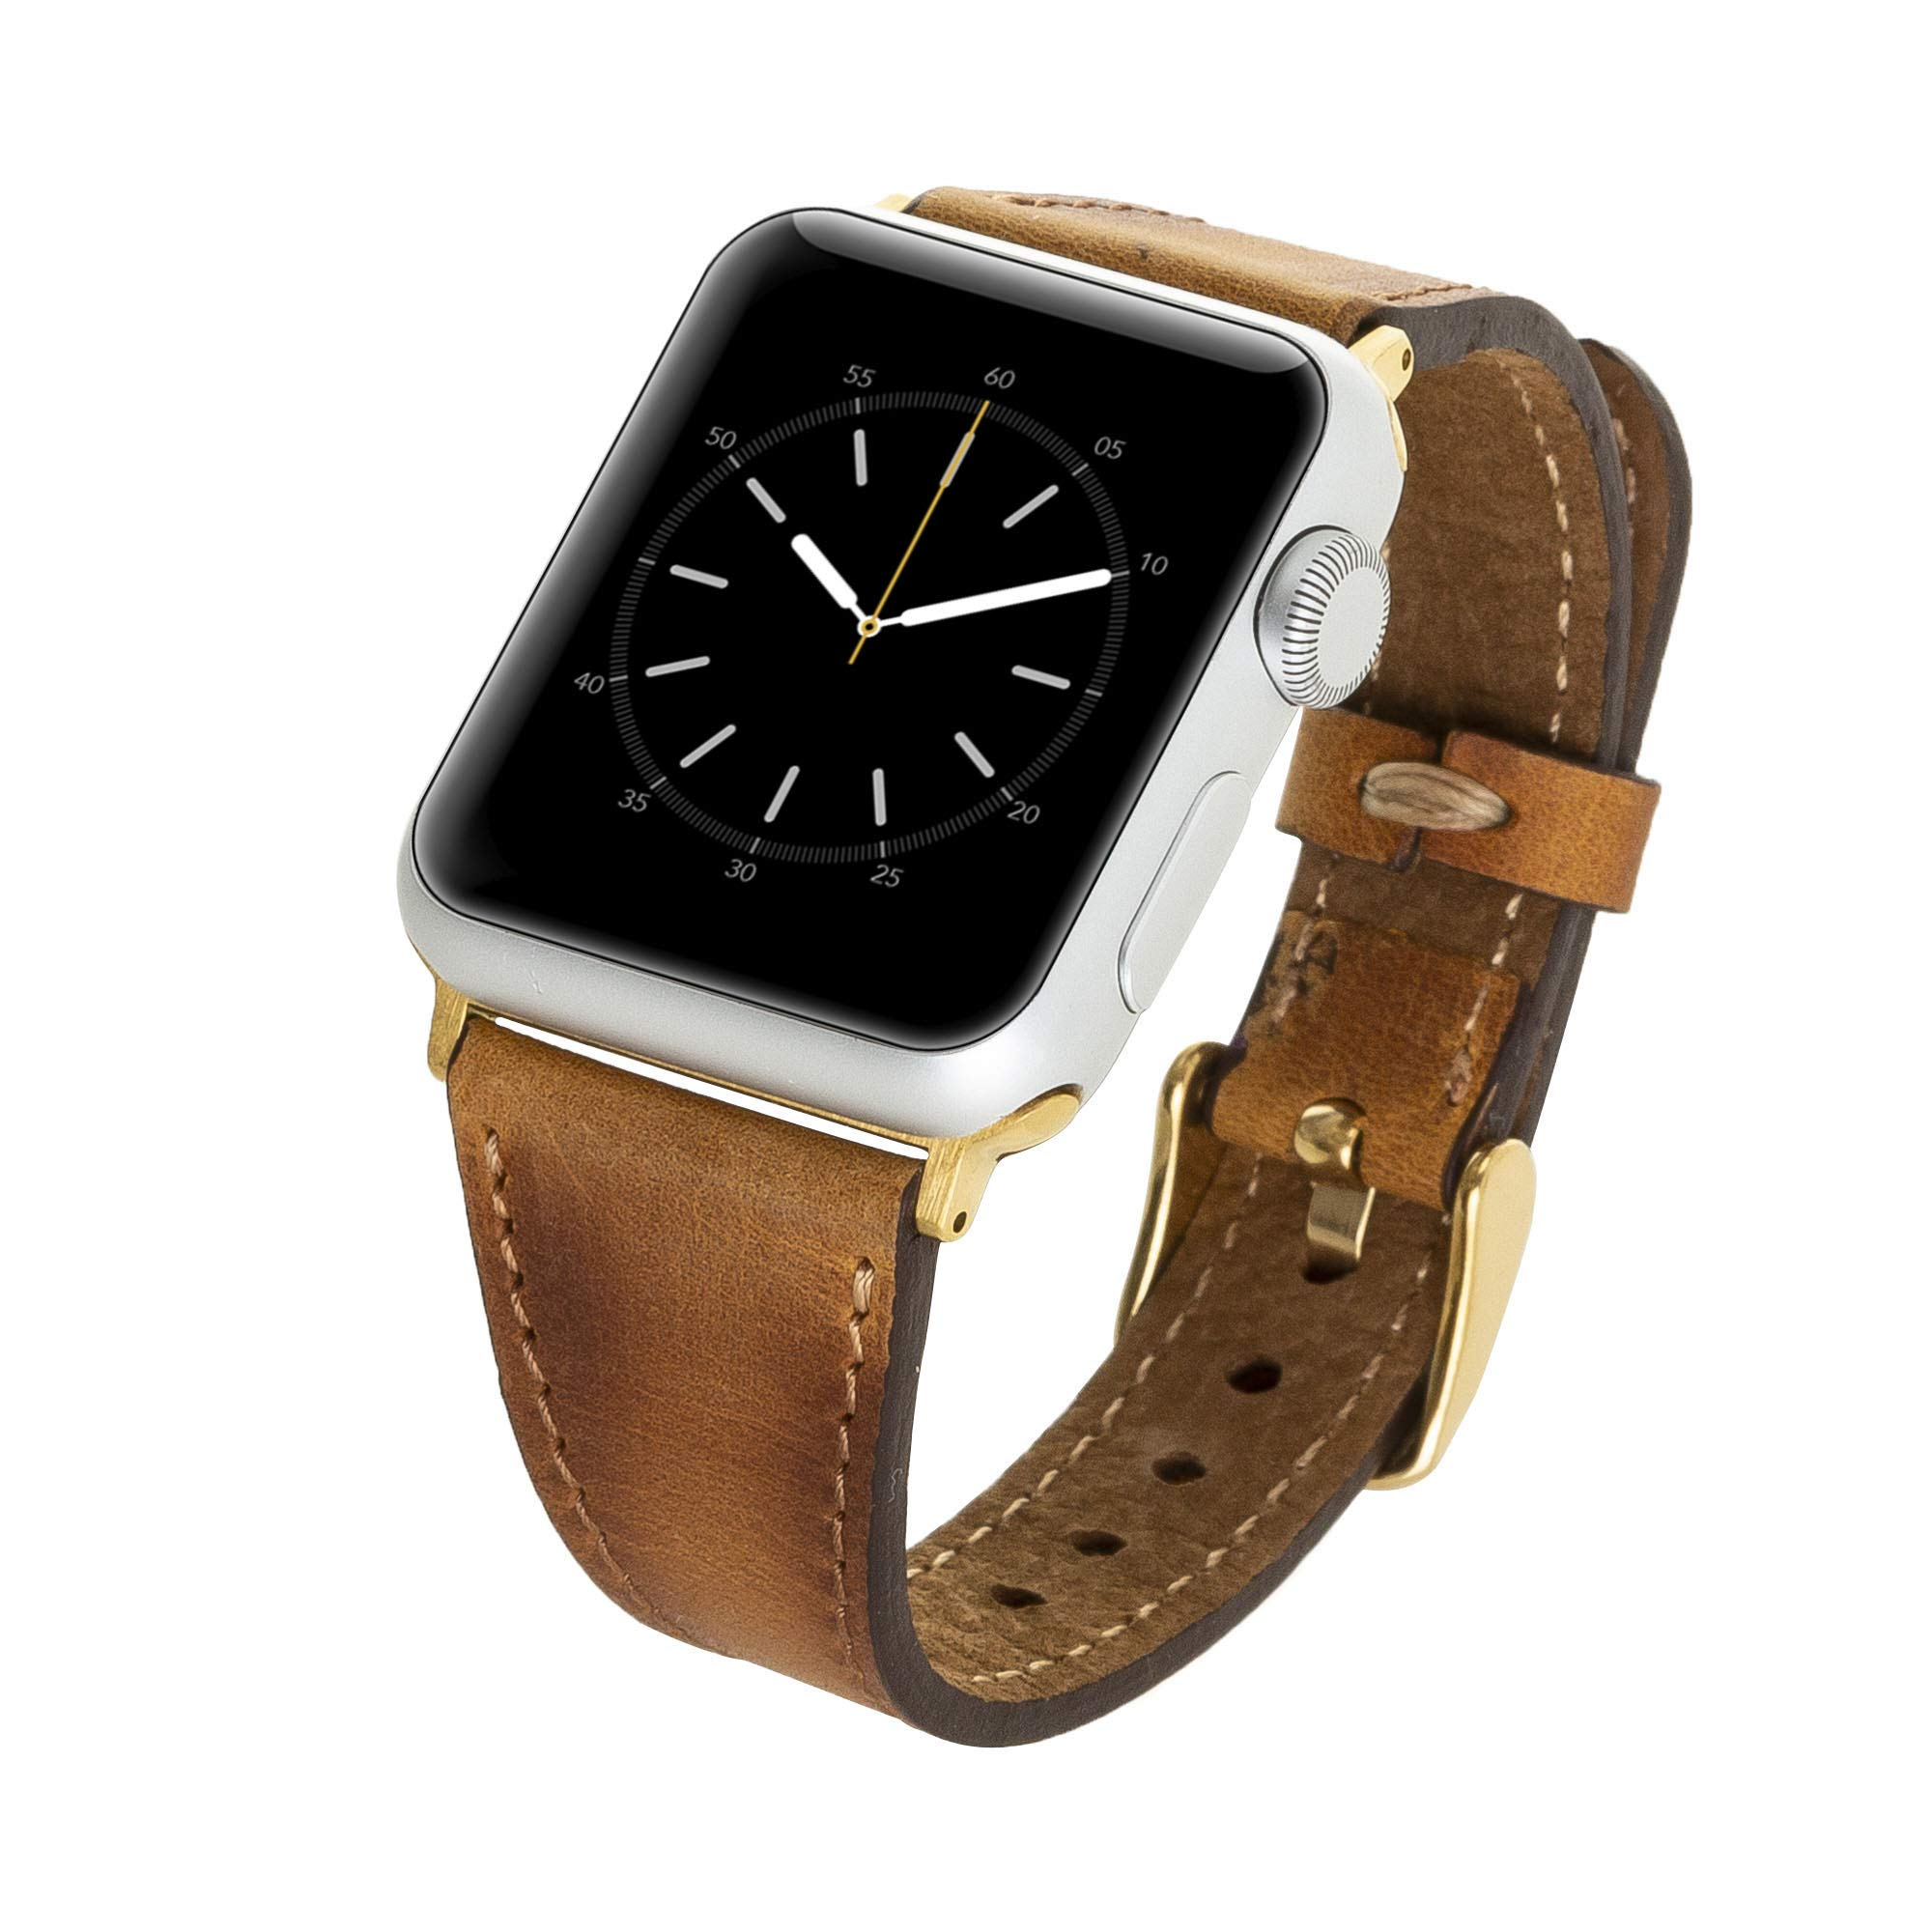 Venito Messina Leather Slim Watch Band Strap Compatible with The Newest Apple Watch iwatch Series 5 as Well as Series 1,2,3, 4 (Antique Brown w/Gold Stainless Steel Hardware, 38mm-40mm) by Venito